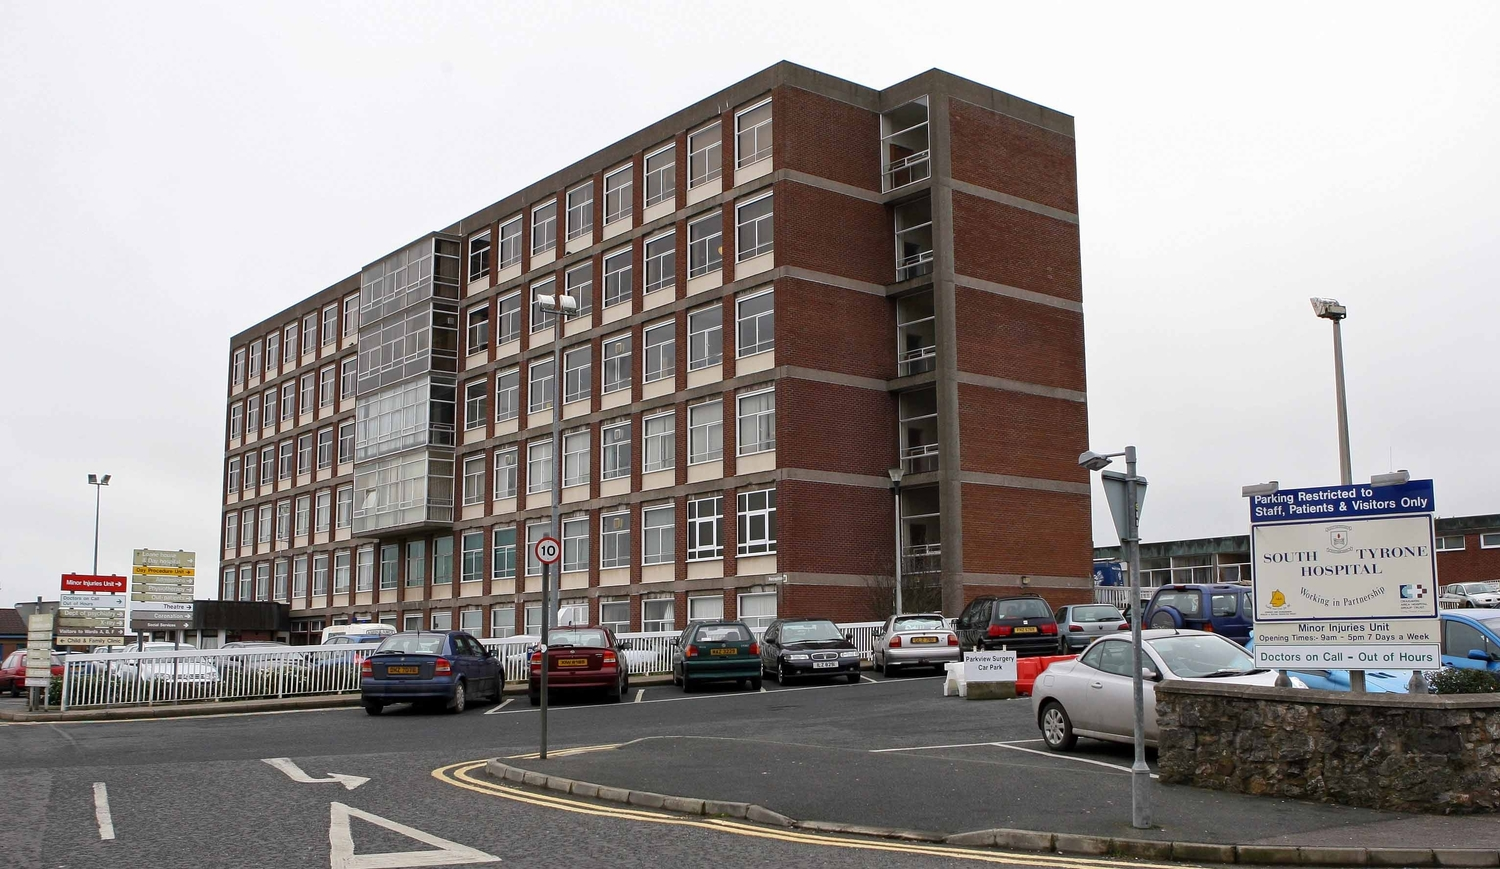 Structural repairs are urgently needed at SouthTyrone Hospital